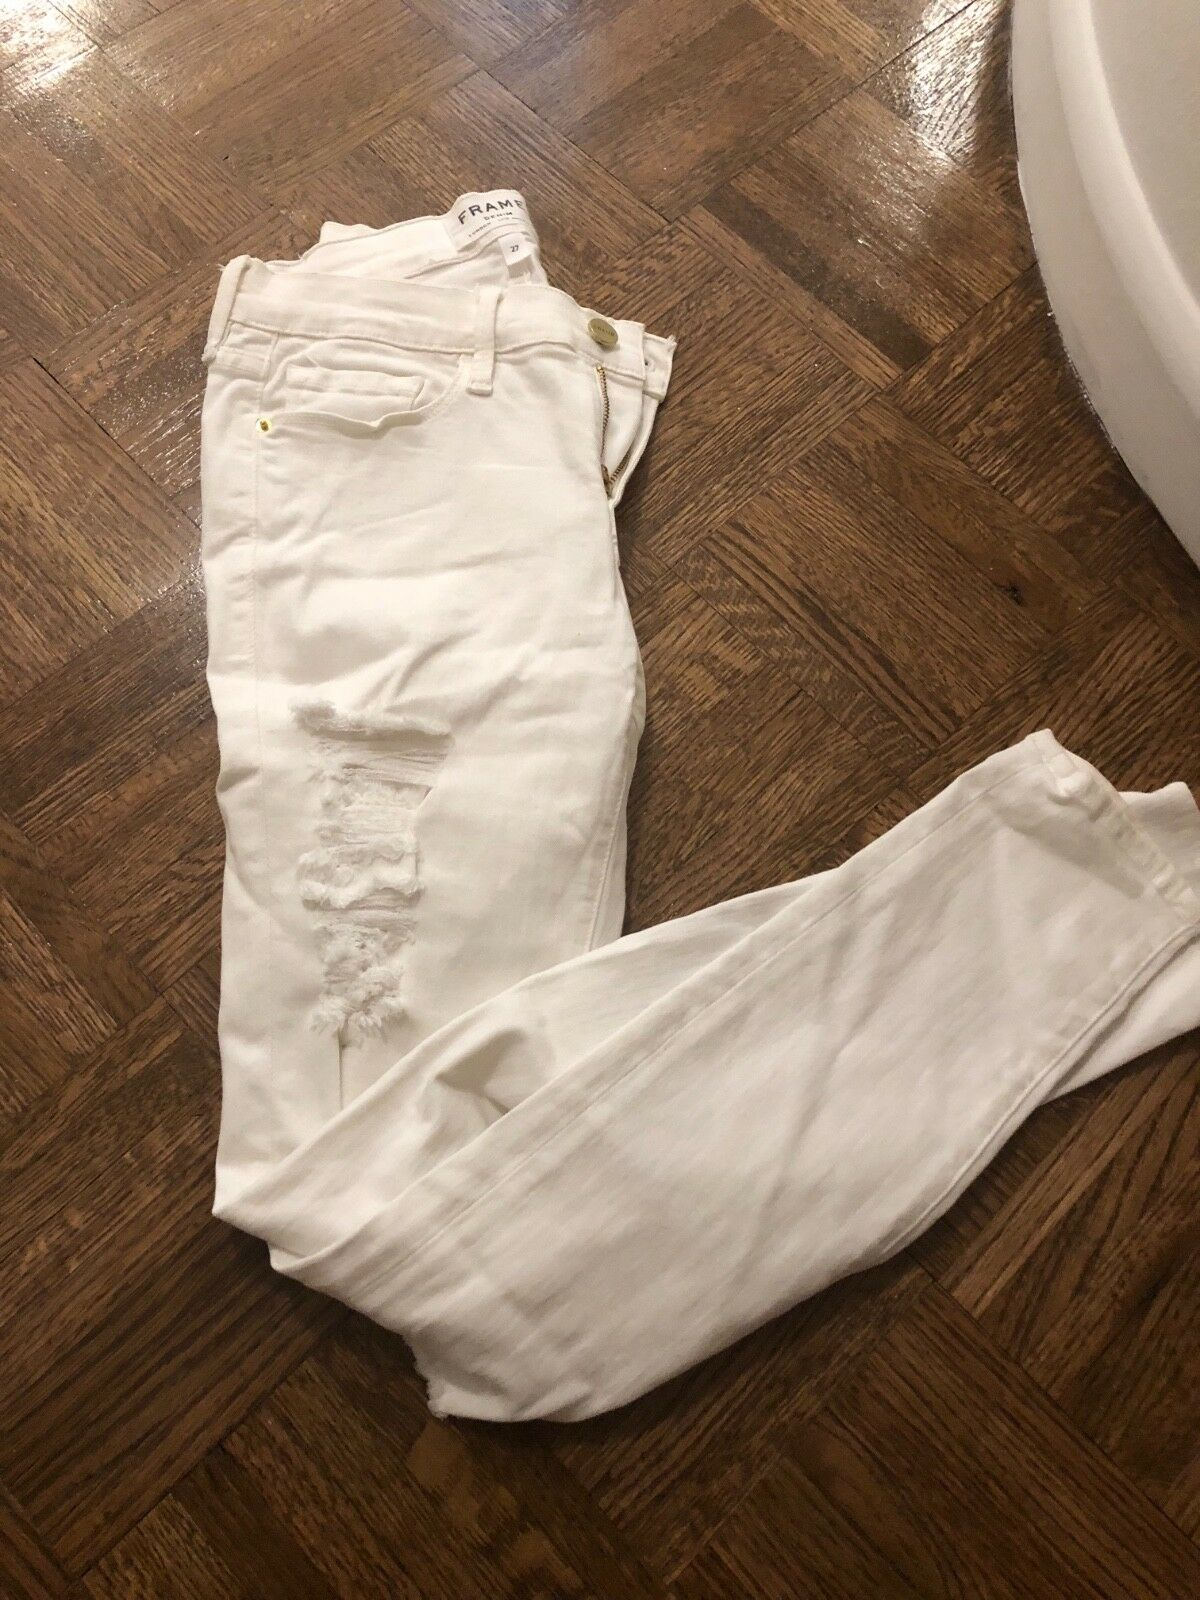 Frame Denim White Skinny Jeans In Size 27. Great Distressed Fit